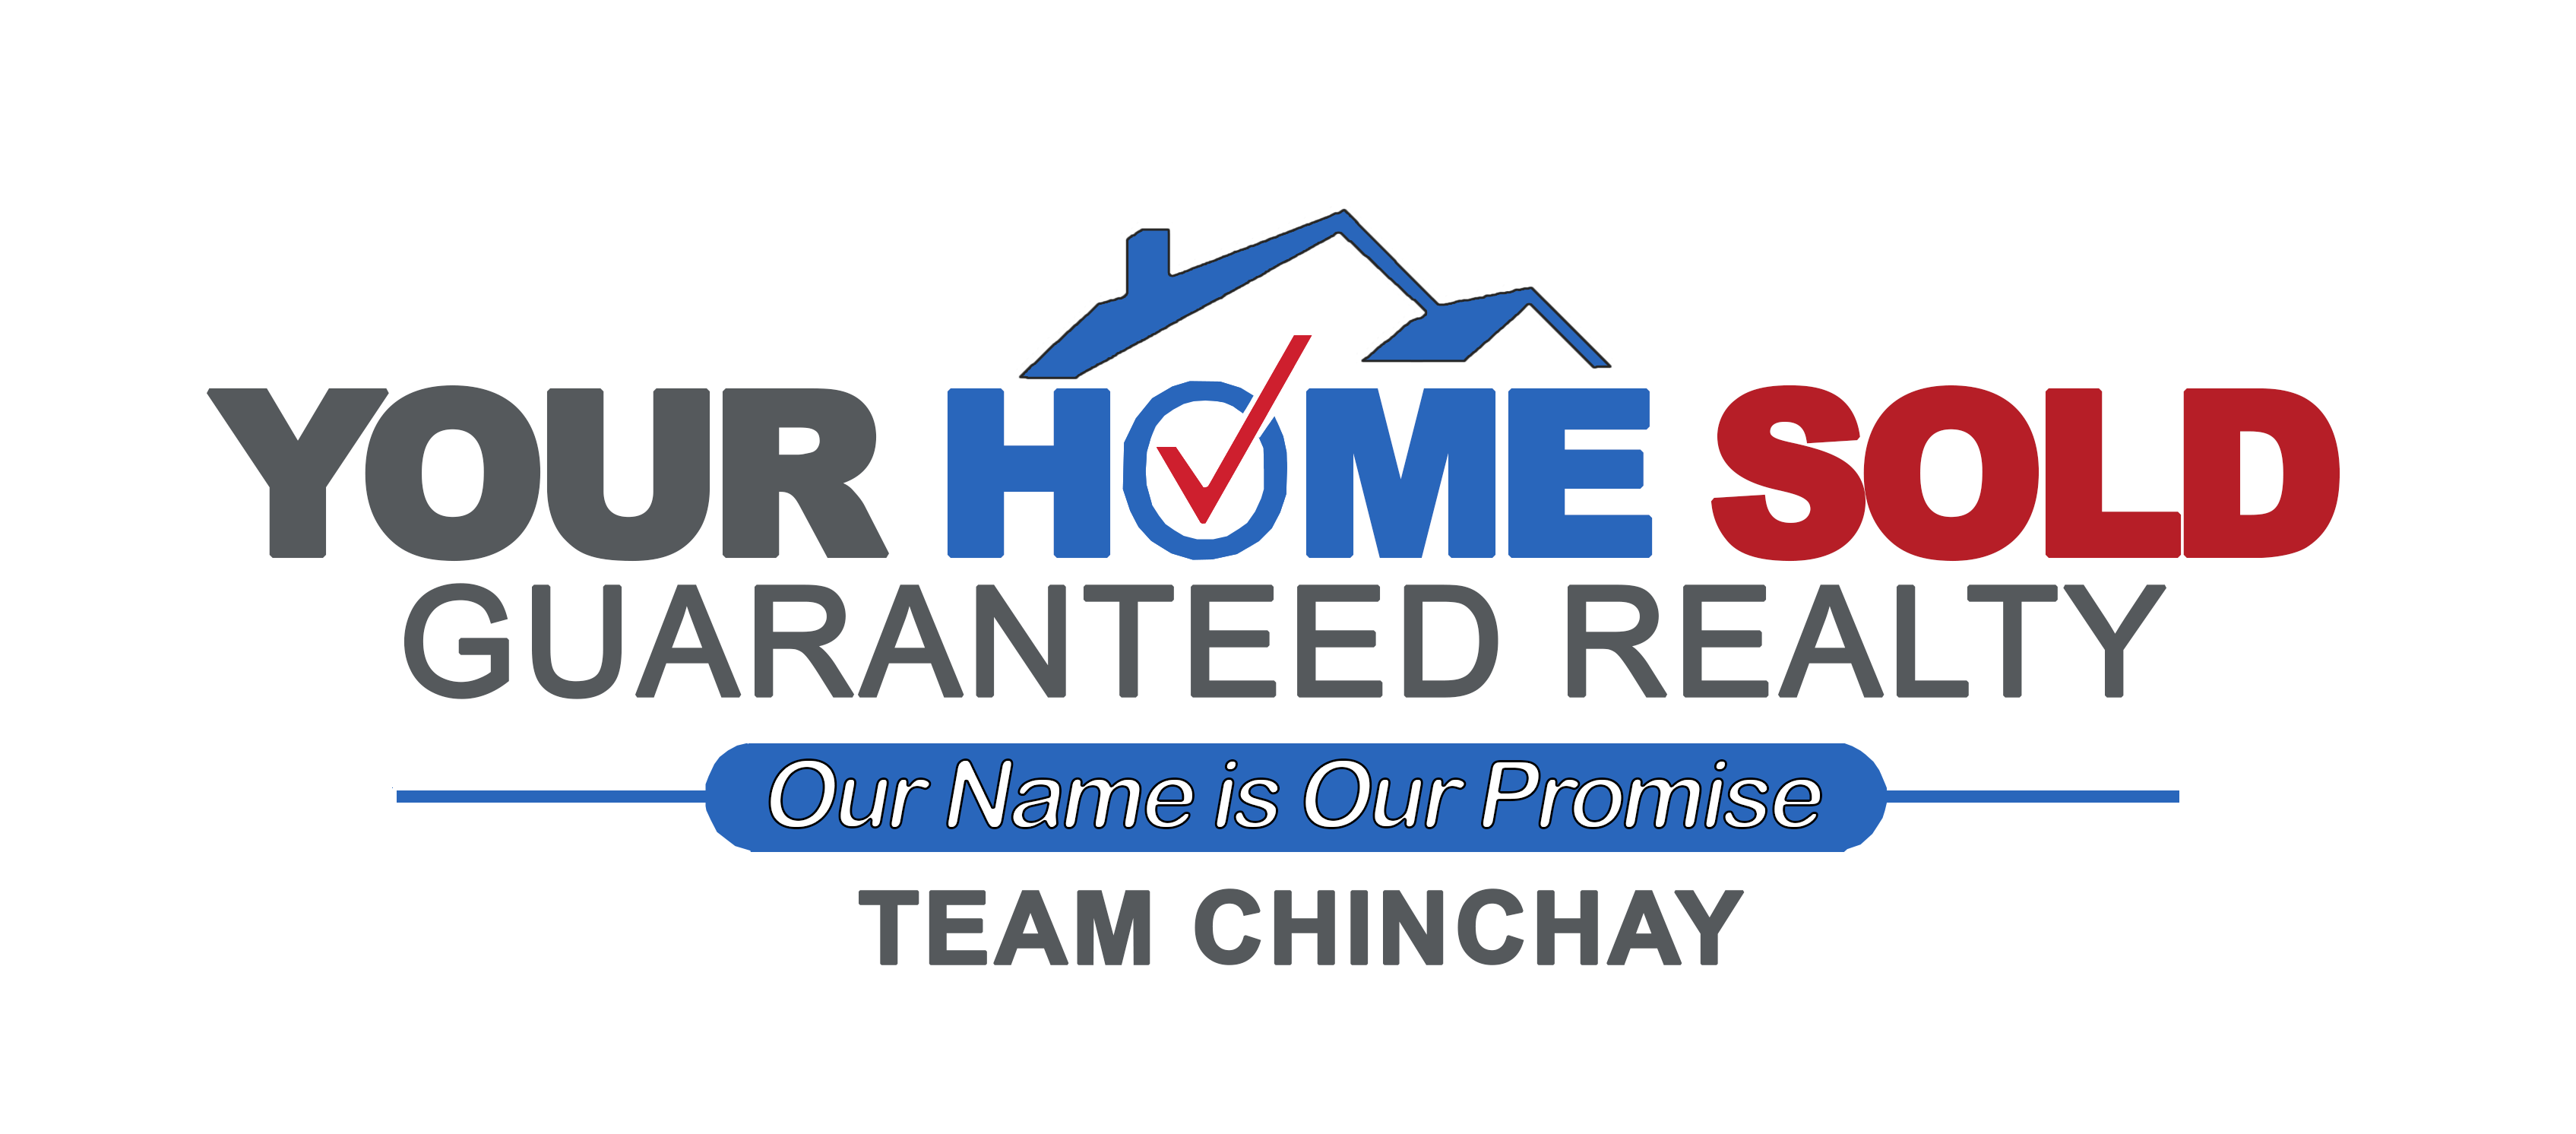 Your Home Sold Guaranteed - Team Chinchay logo